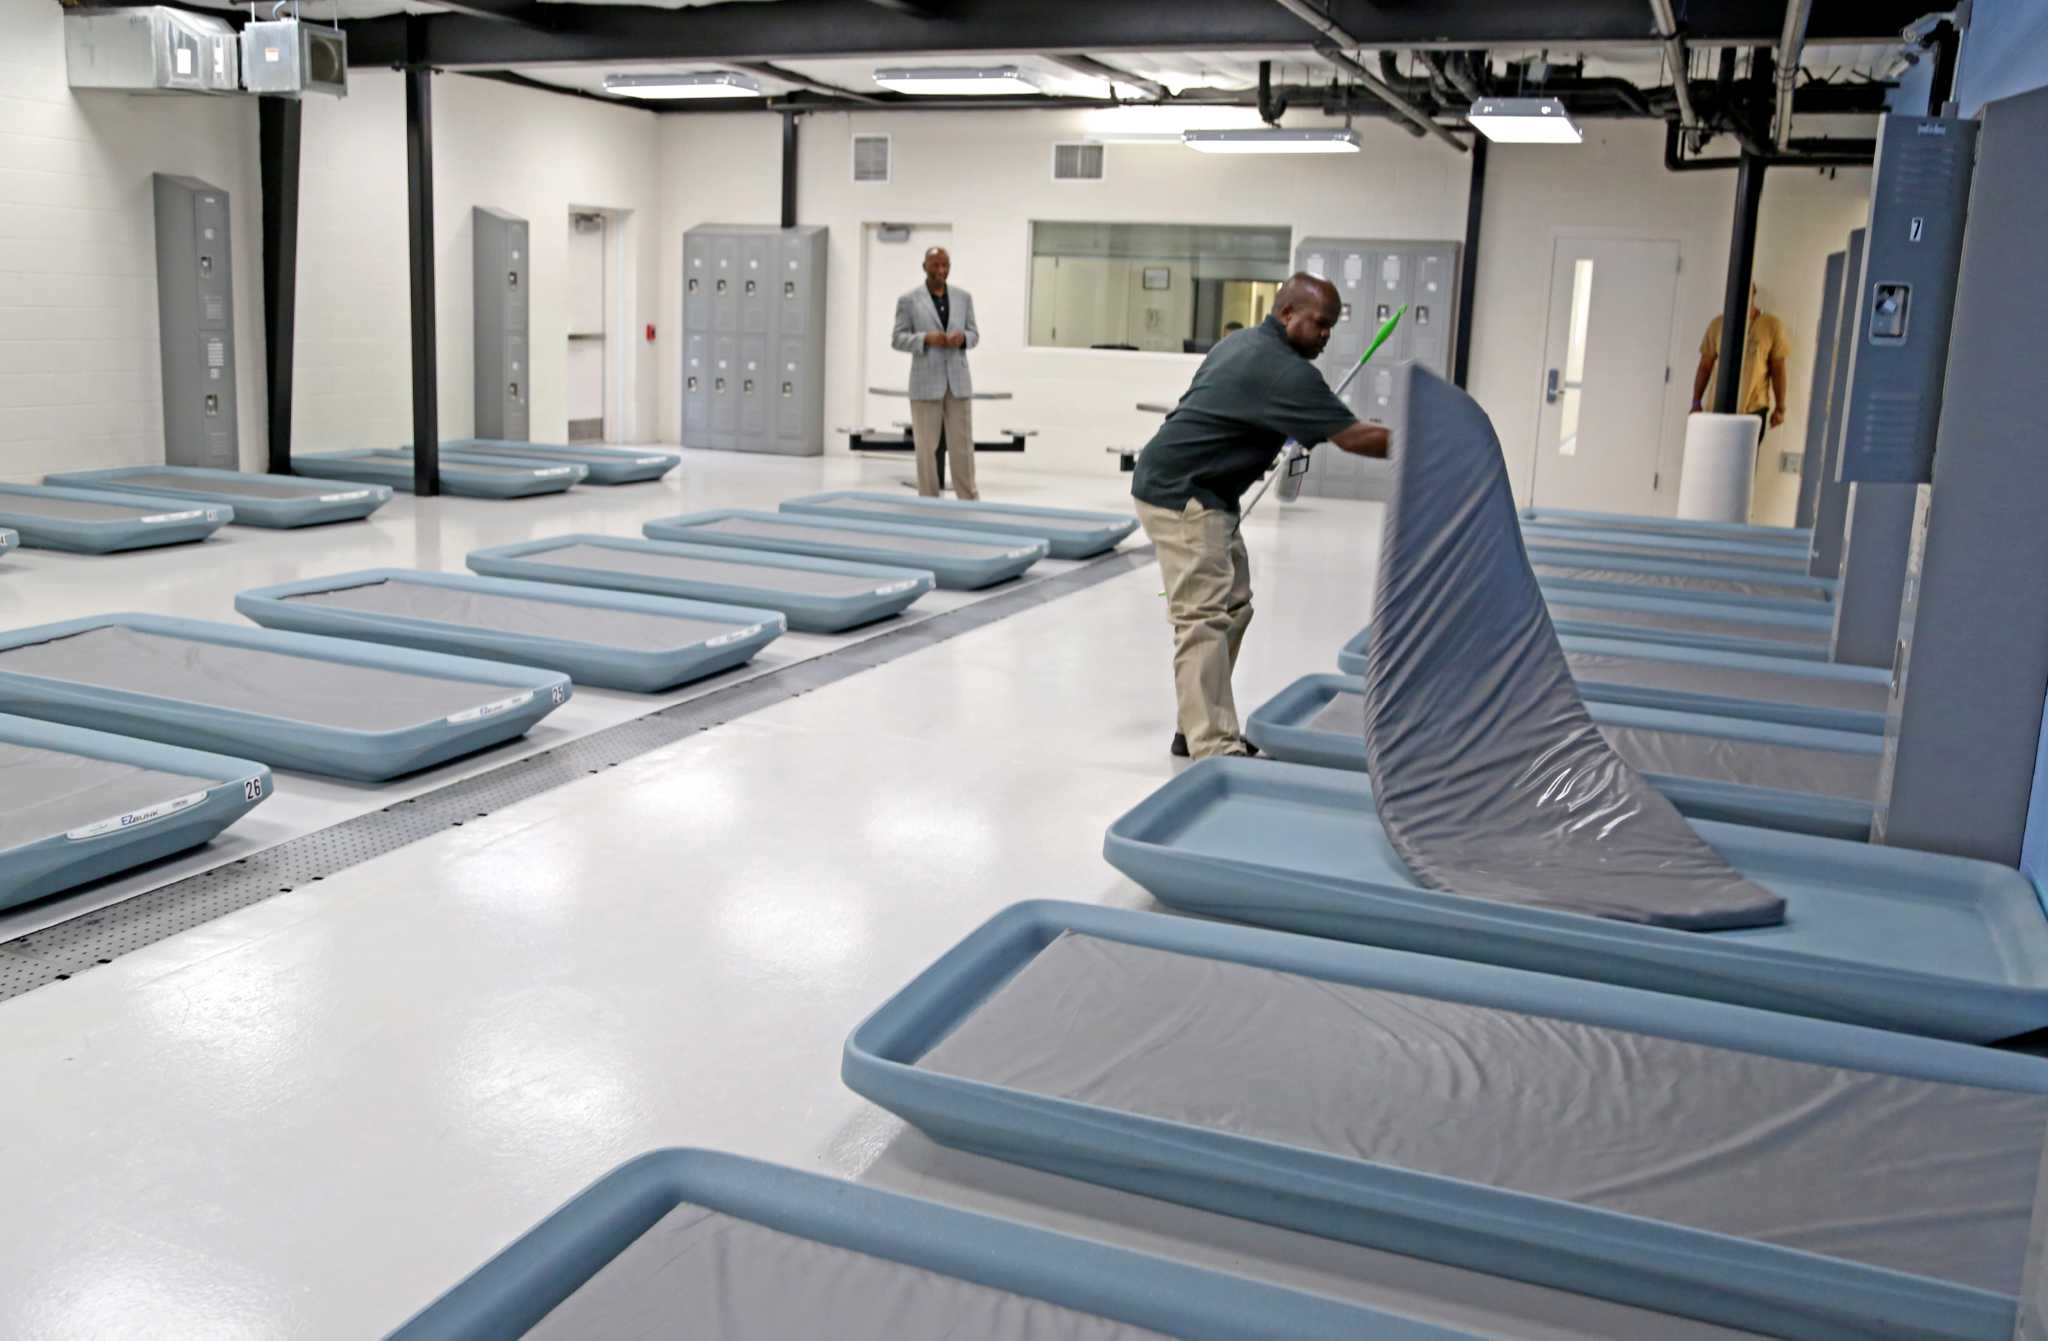 Sobering Center A Place For Addicts To Get Help